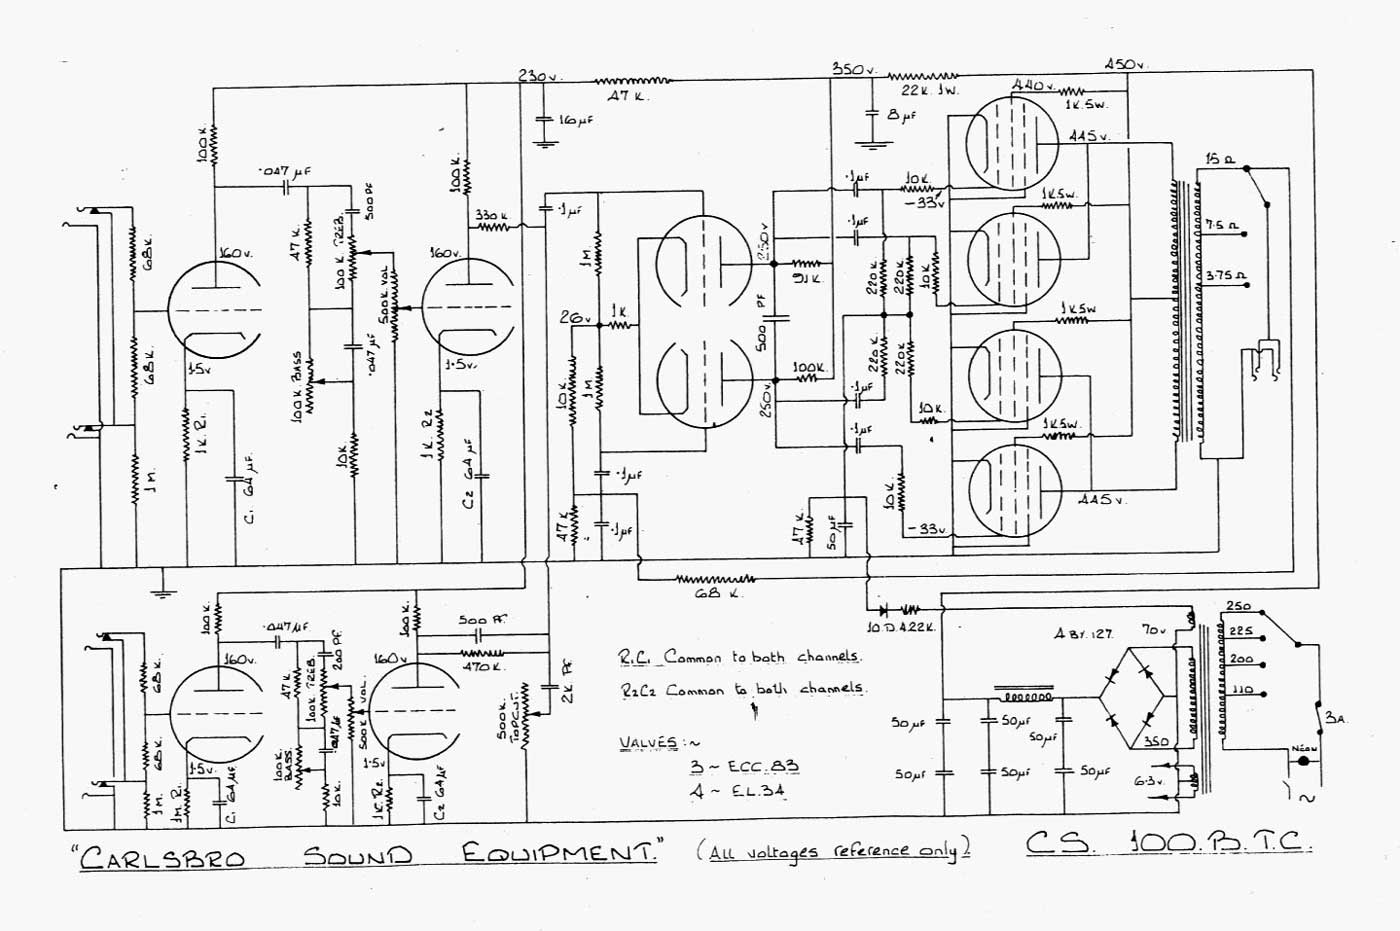 2004 saturn ion power window wiring diagram carlsbro cs100 b t c amp schematic  carlsbro cs100 b t c amp schematic